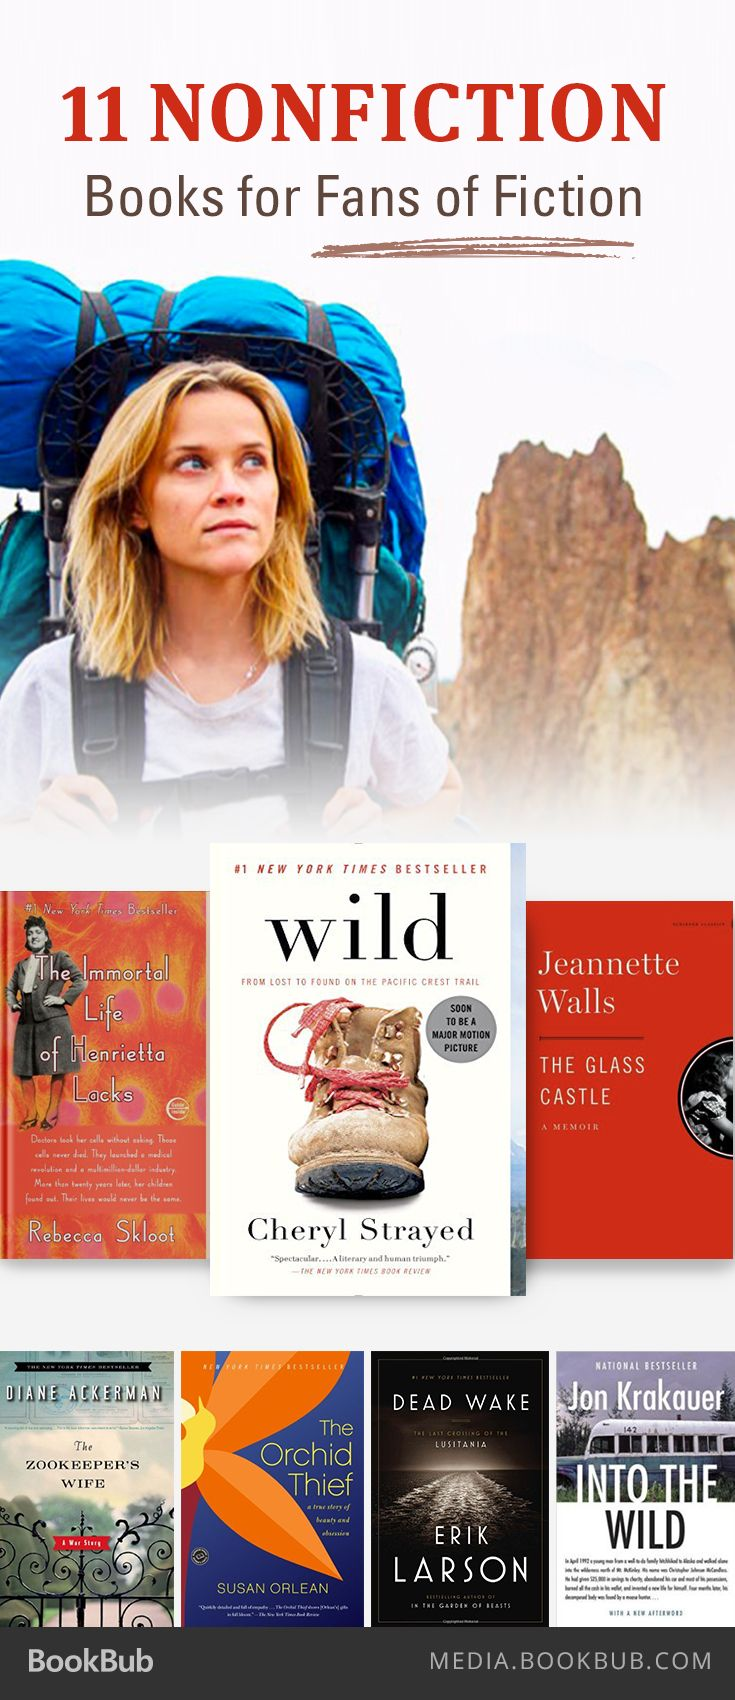 11 nonfiction books that are worth a read!